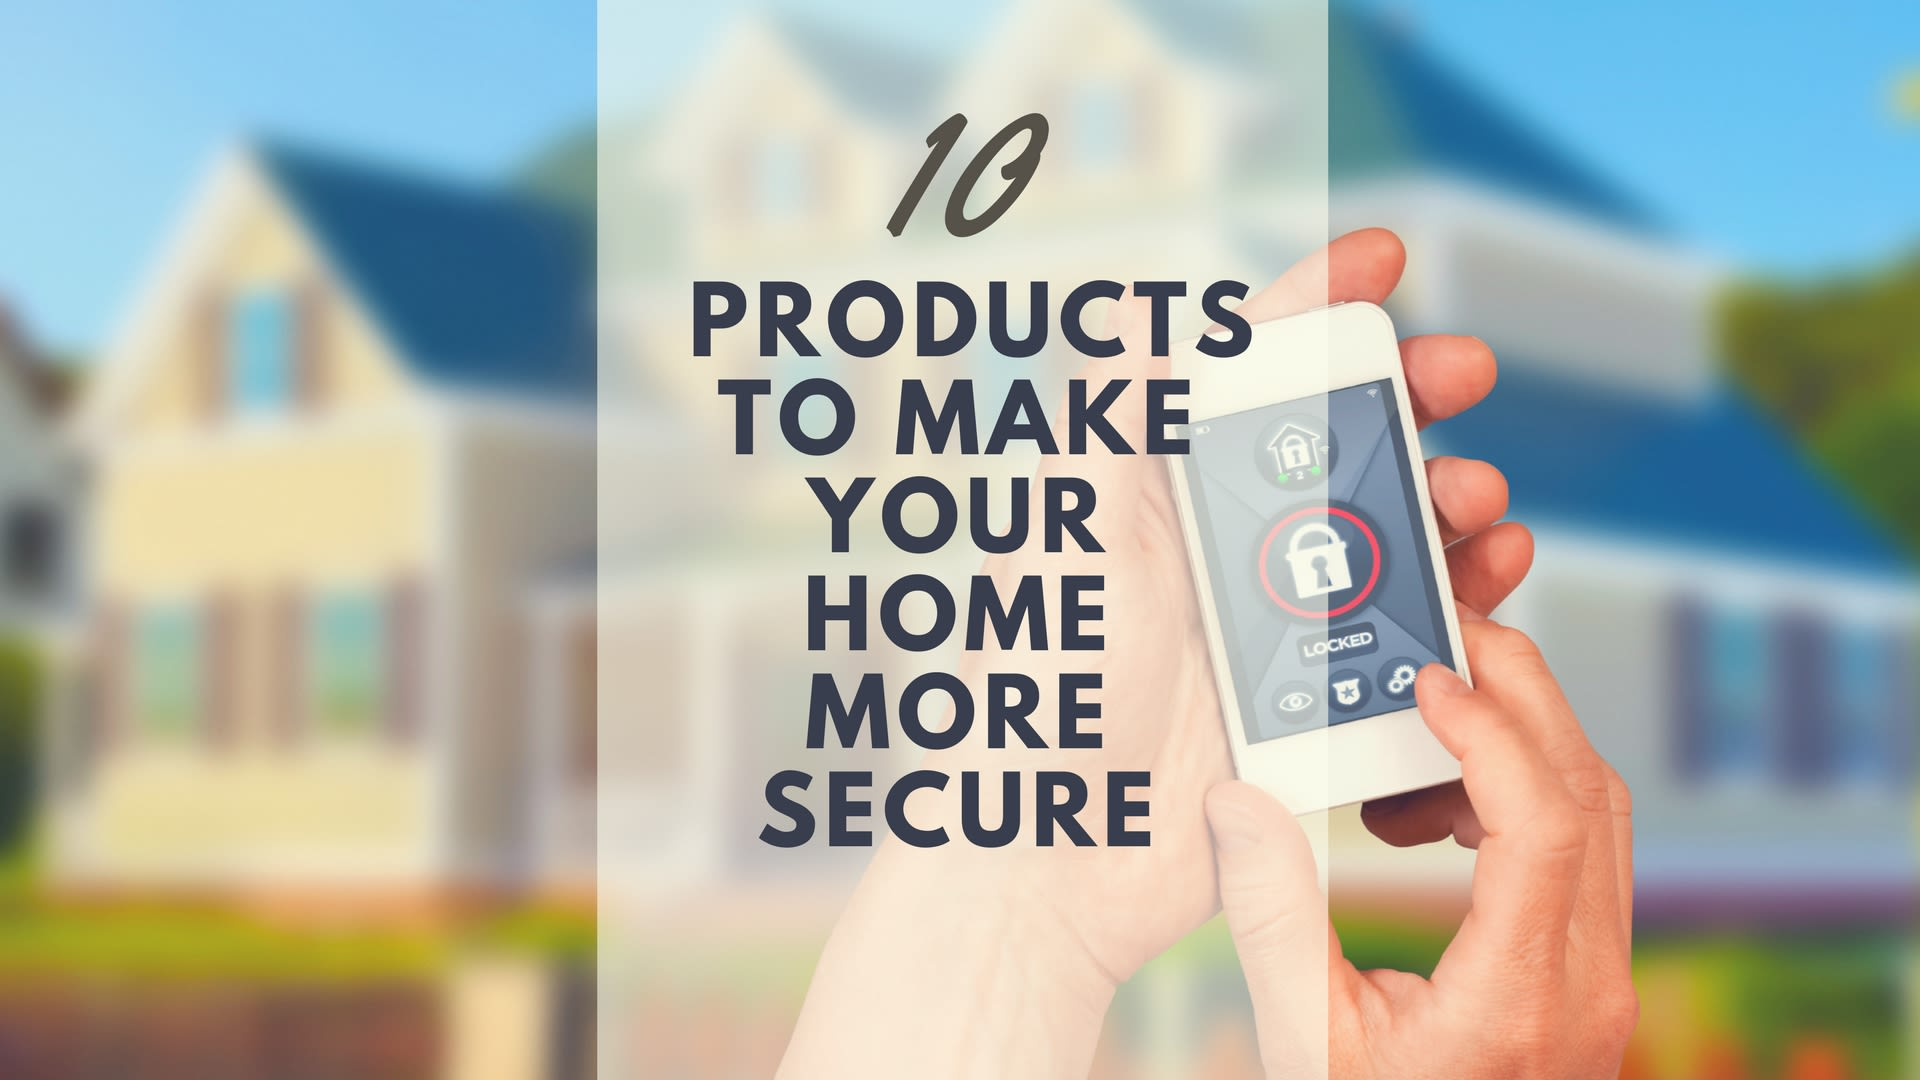 10 Products To Make Your Home More Secure